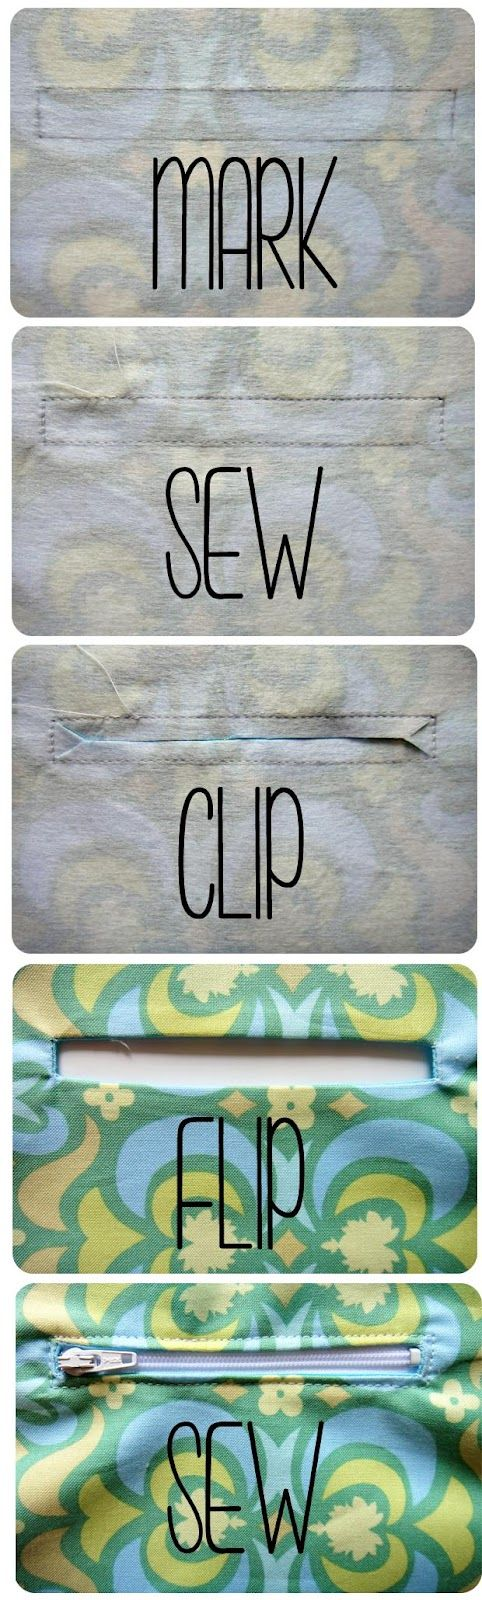 zipper tutorial - this makes it look so easy!